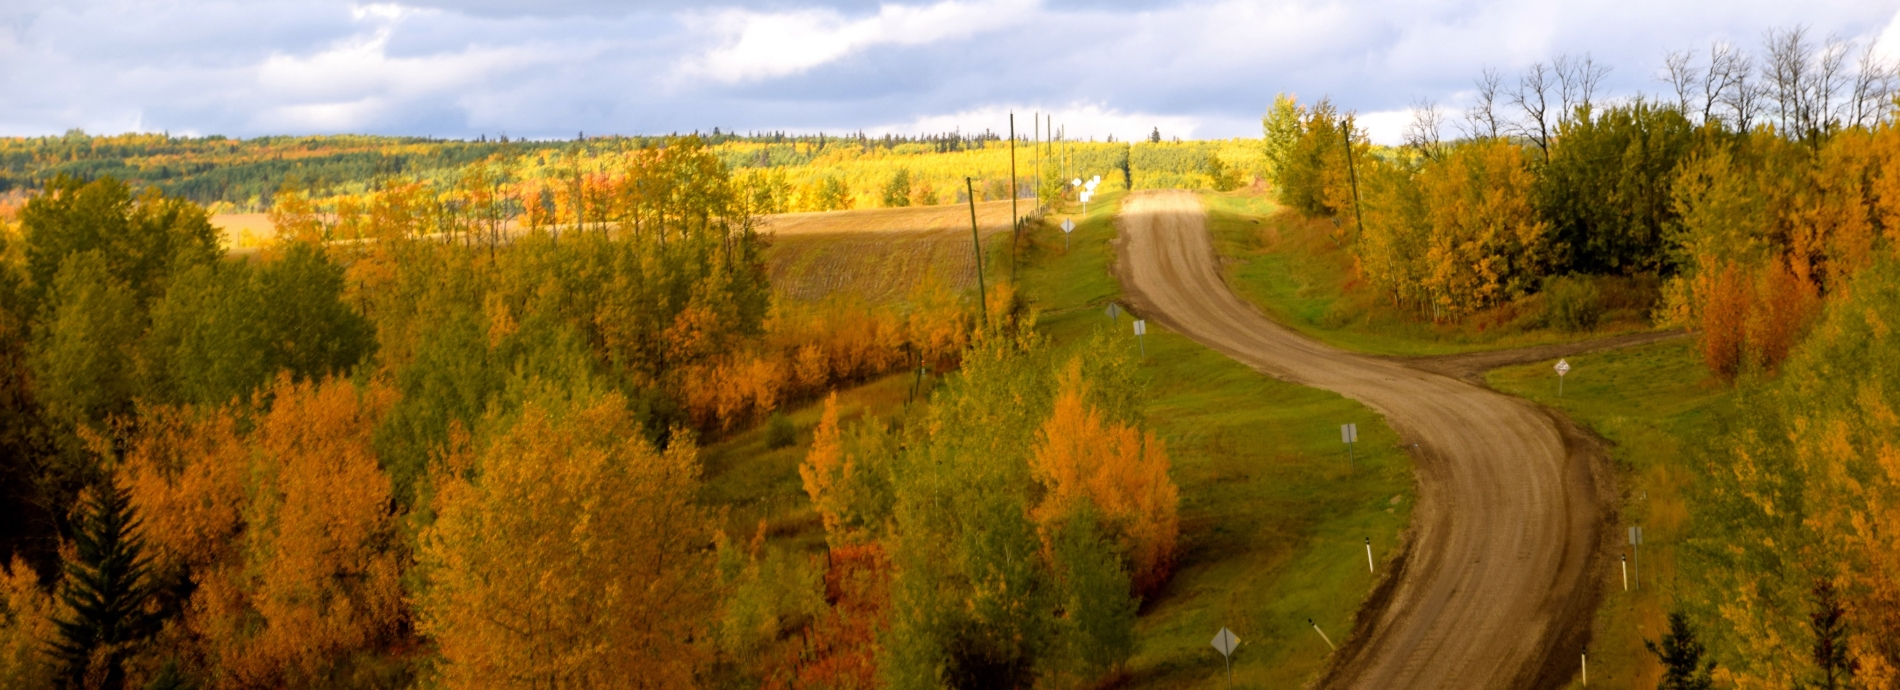 A shot of a country landscape with a nice winding dirt road.